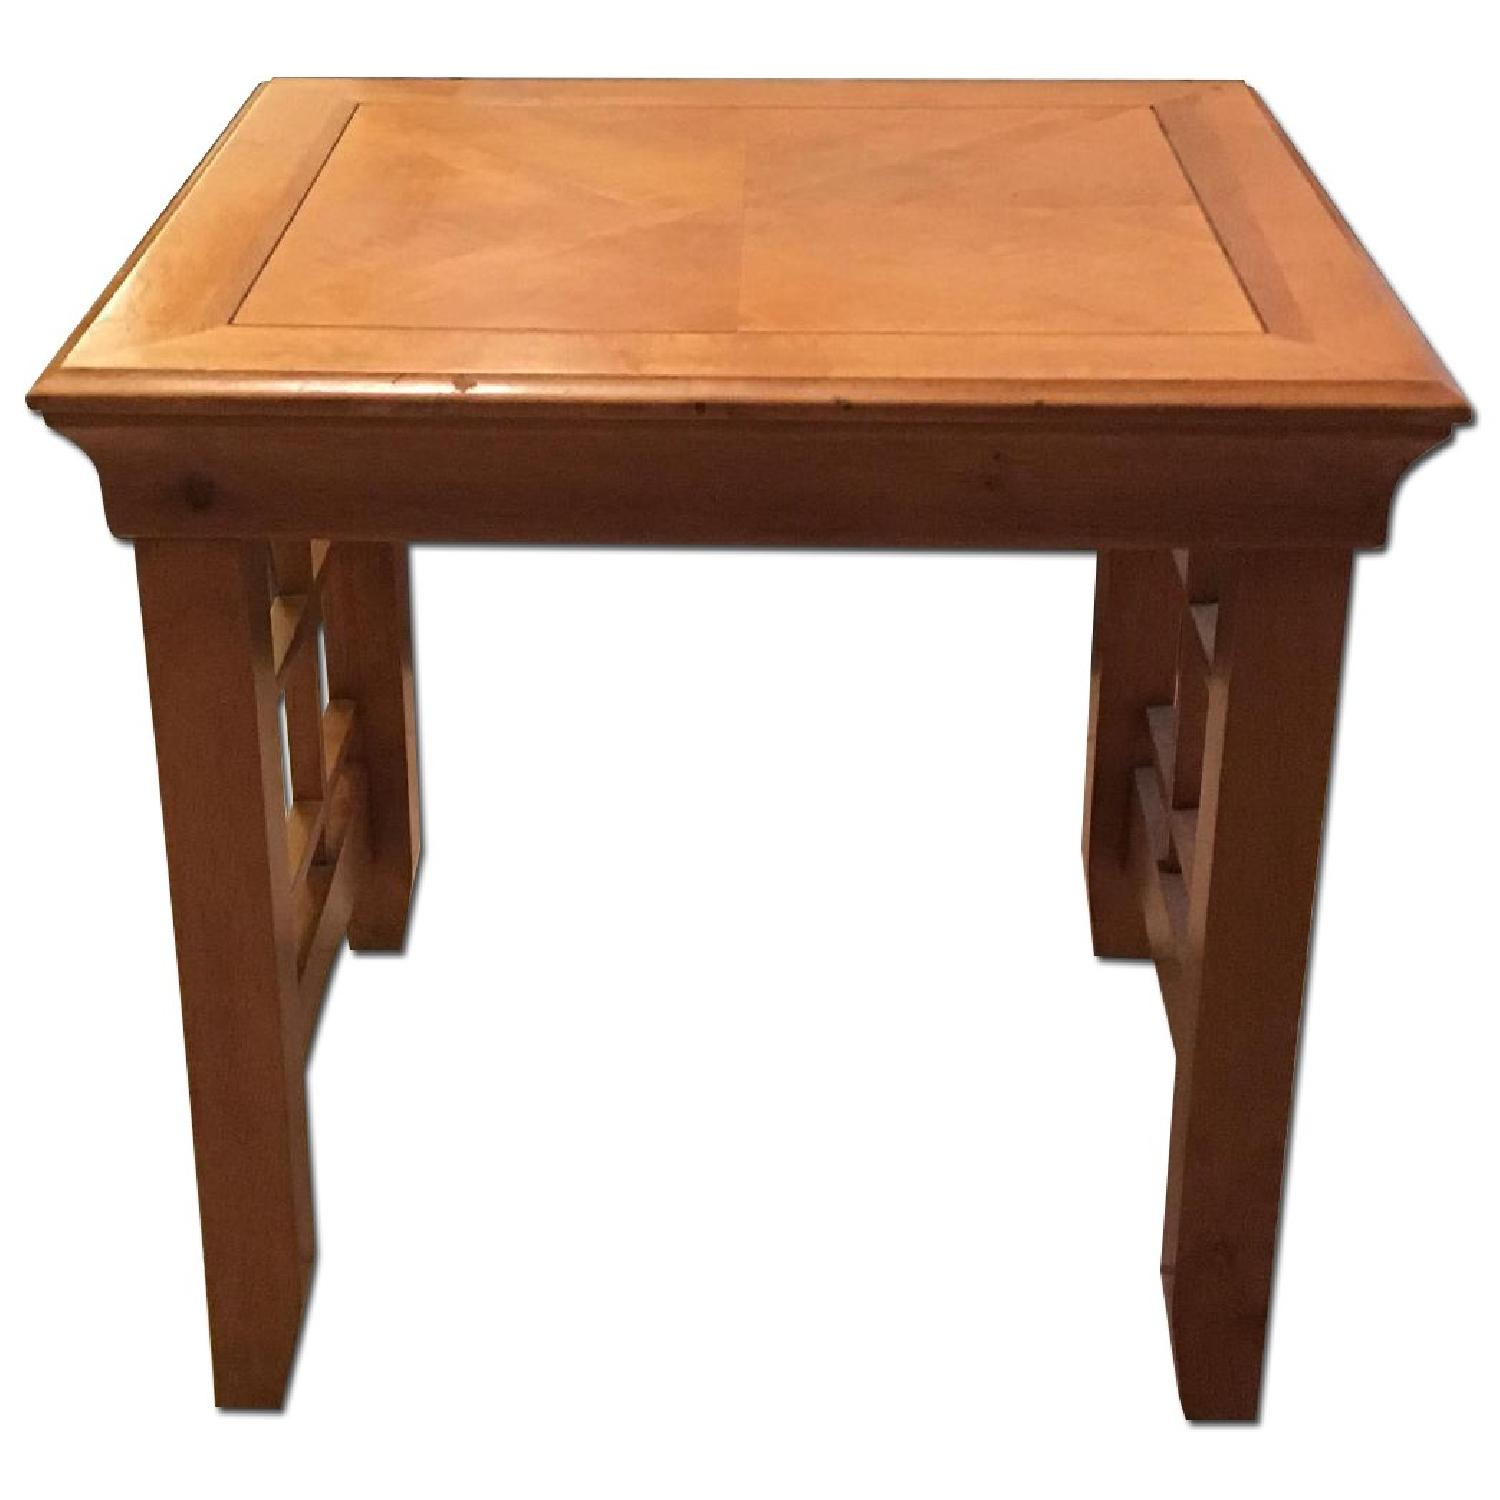 Furniture Options Wooden Coffee Table + 2 Matching End Tables - image-10